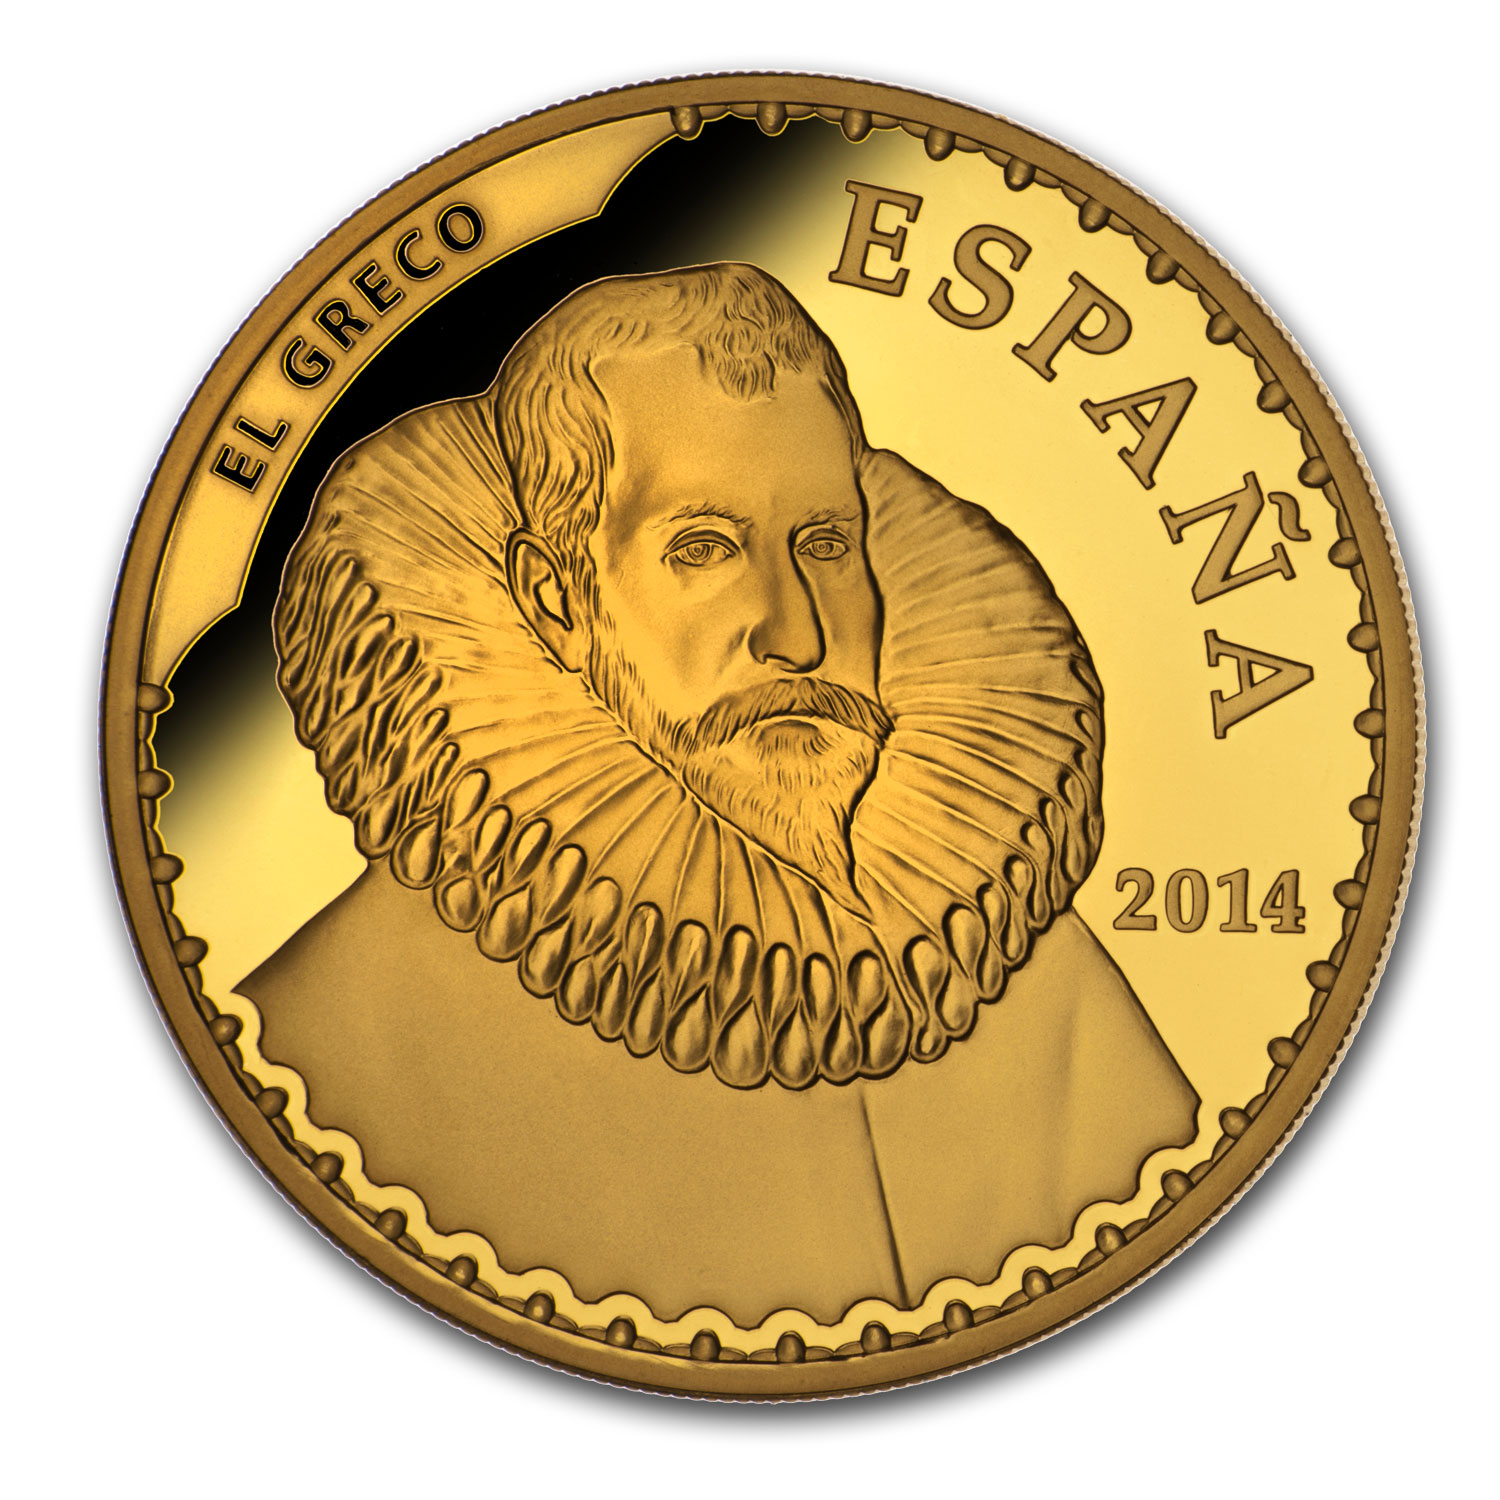 2014 Proof Gold €400 Treasures of the Spanish Museums (El Greco)